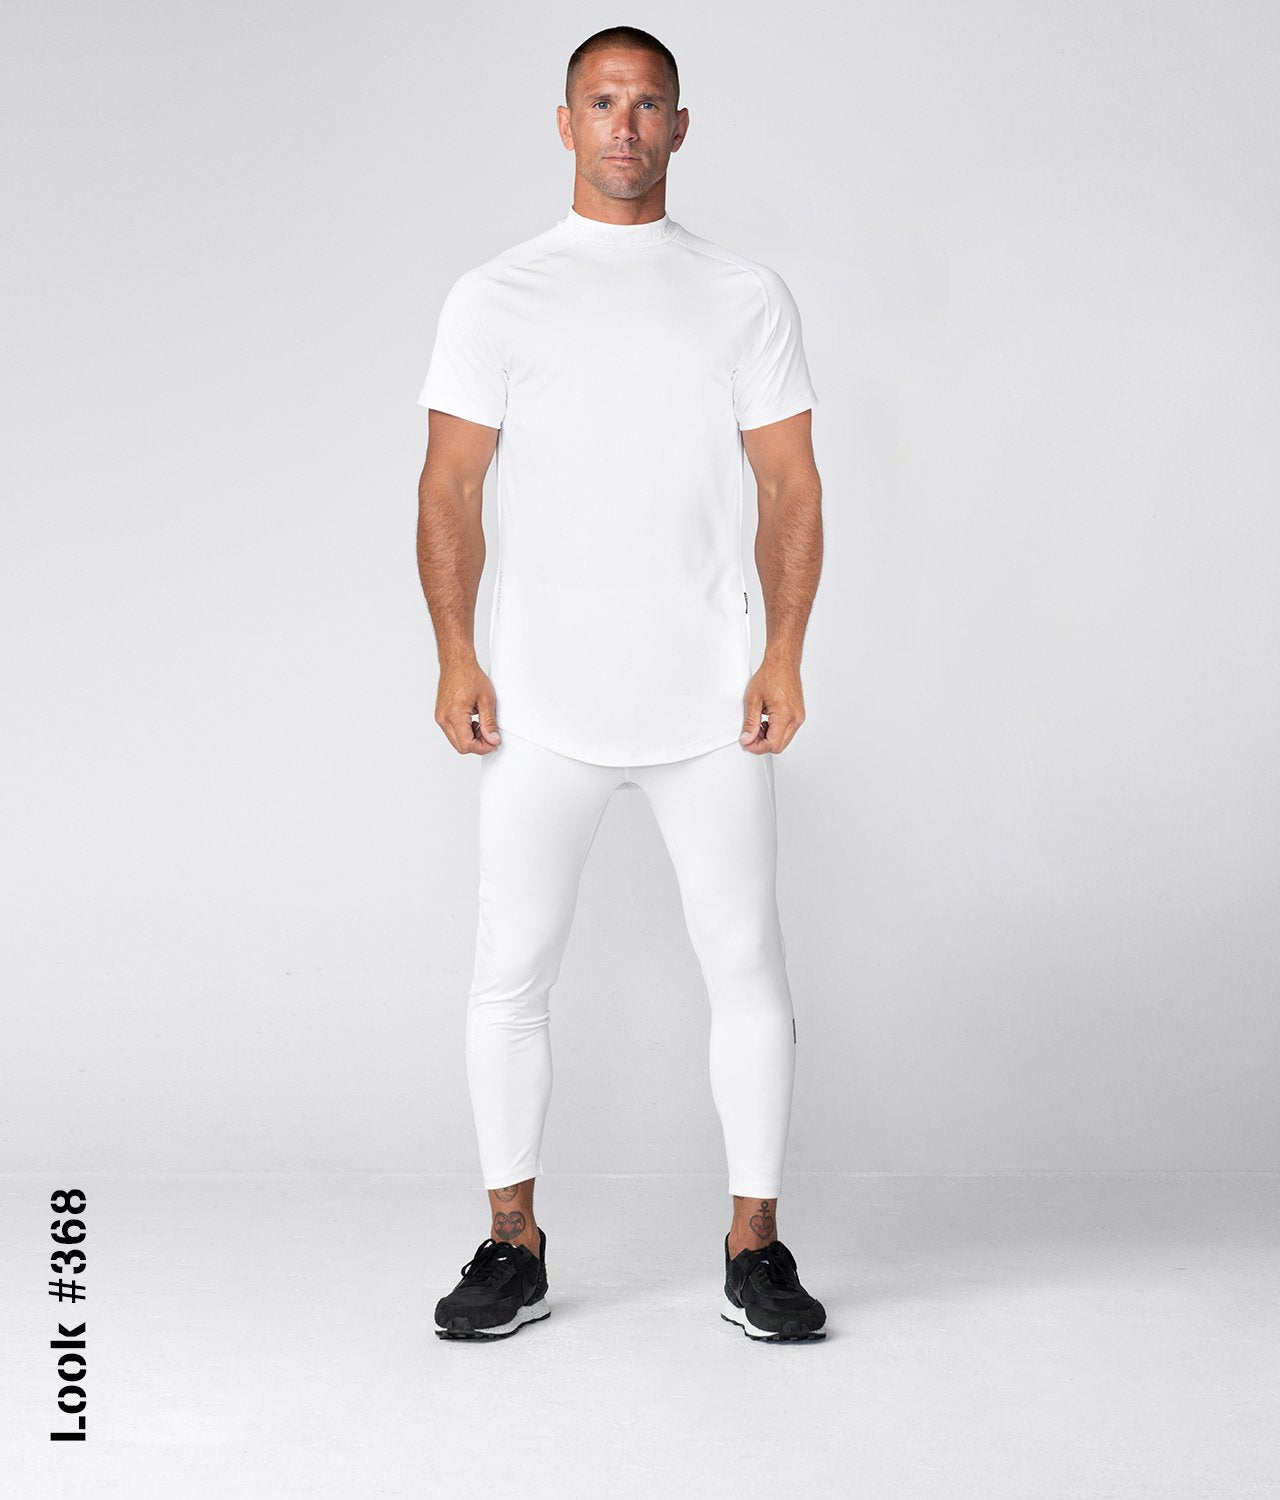 Born Tough United Kingdom Mock Neck High-Performance Short Sleeve Compression Gym Workout Shirt For Men White